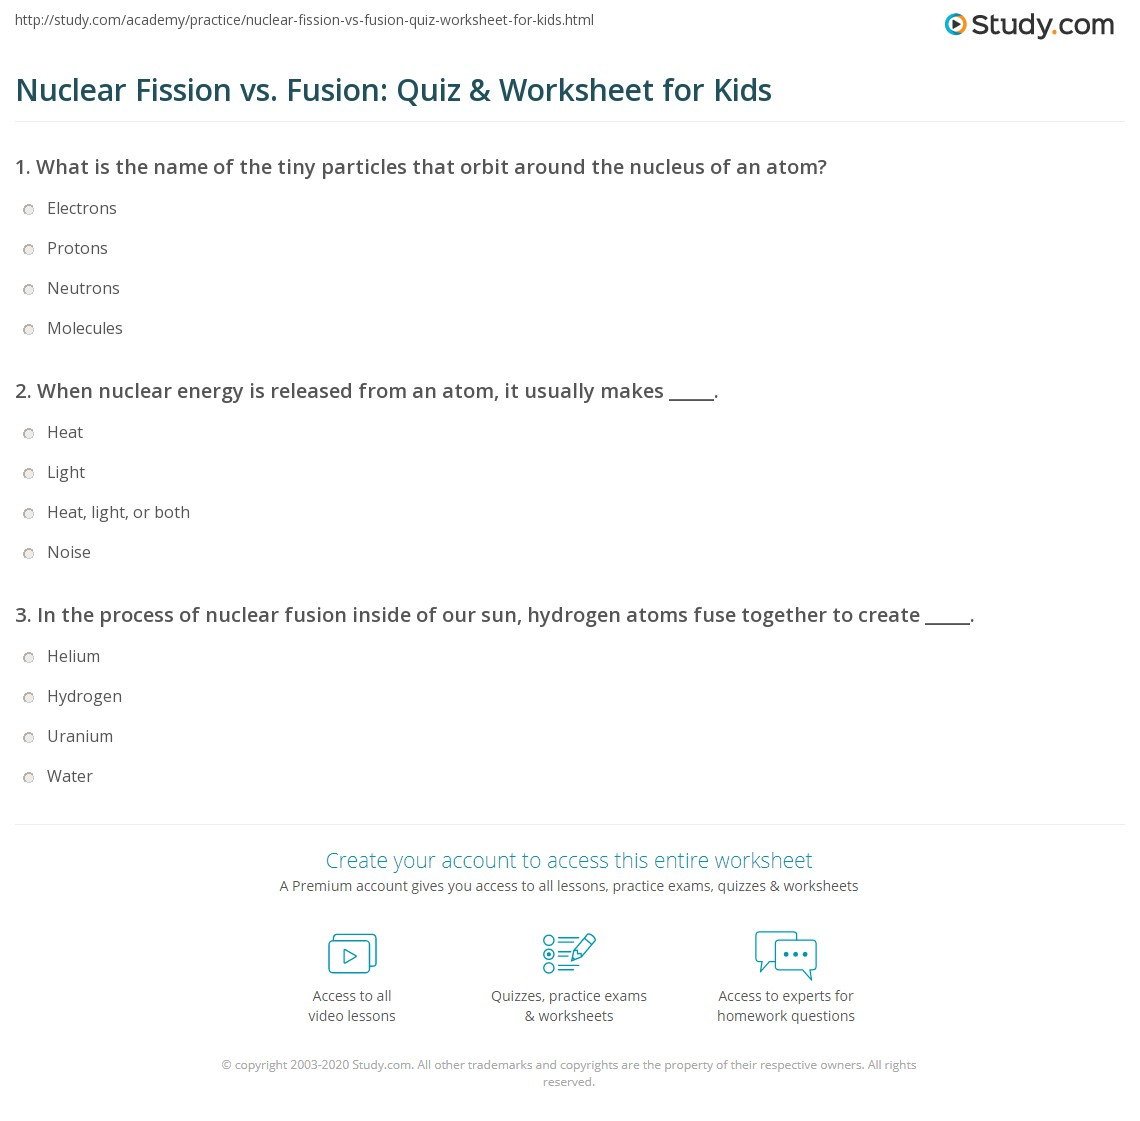 an introduction to the analysis of fission or fusion and nuclear energy View homework help - introduction to fission and fusion from science 101 at columbia southern university, orange beach nuclear reactions: an introduction to fission.